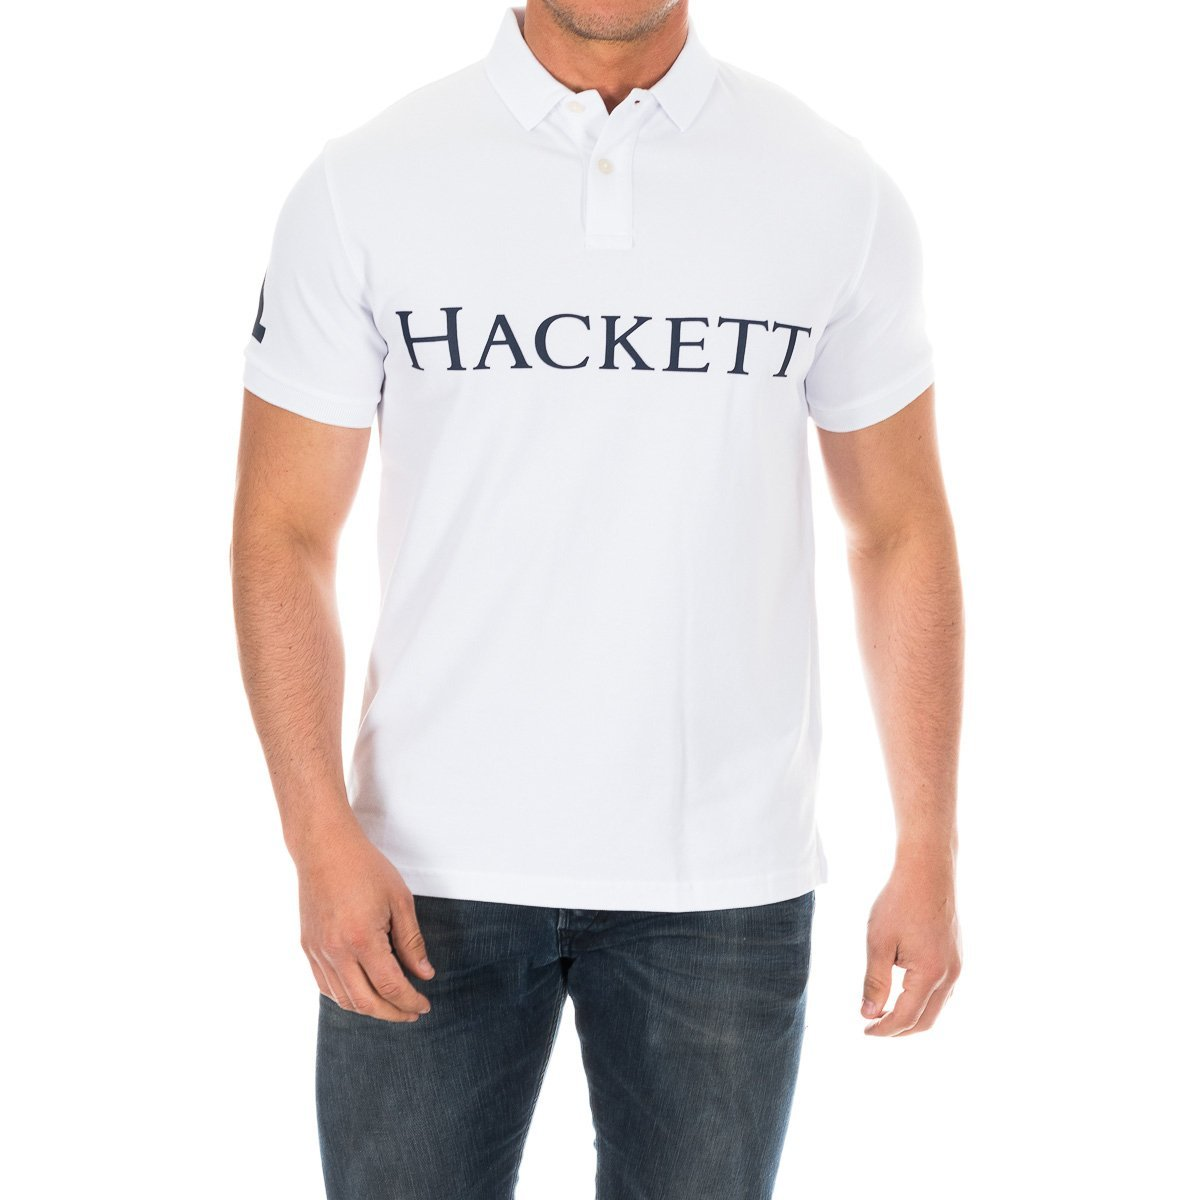 Hackett London GMD Hackett Polo, Blanco (White 800), S para Hombre ...